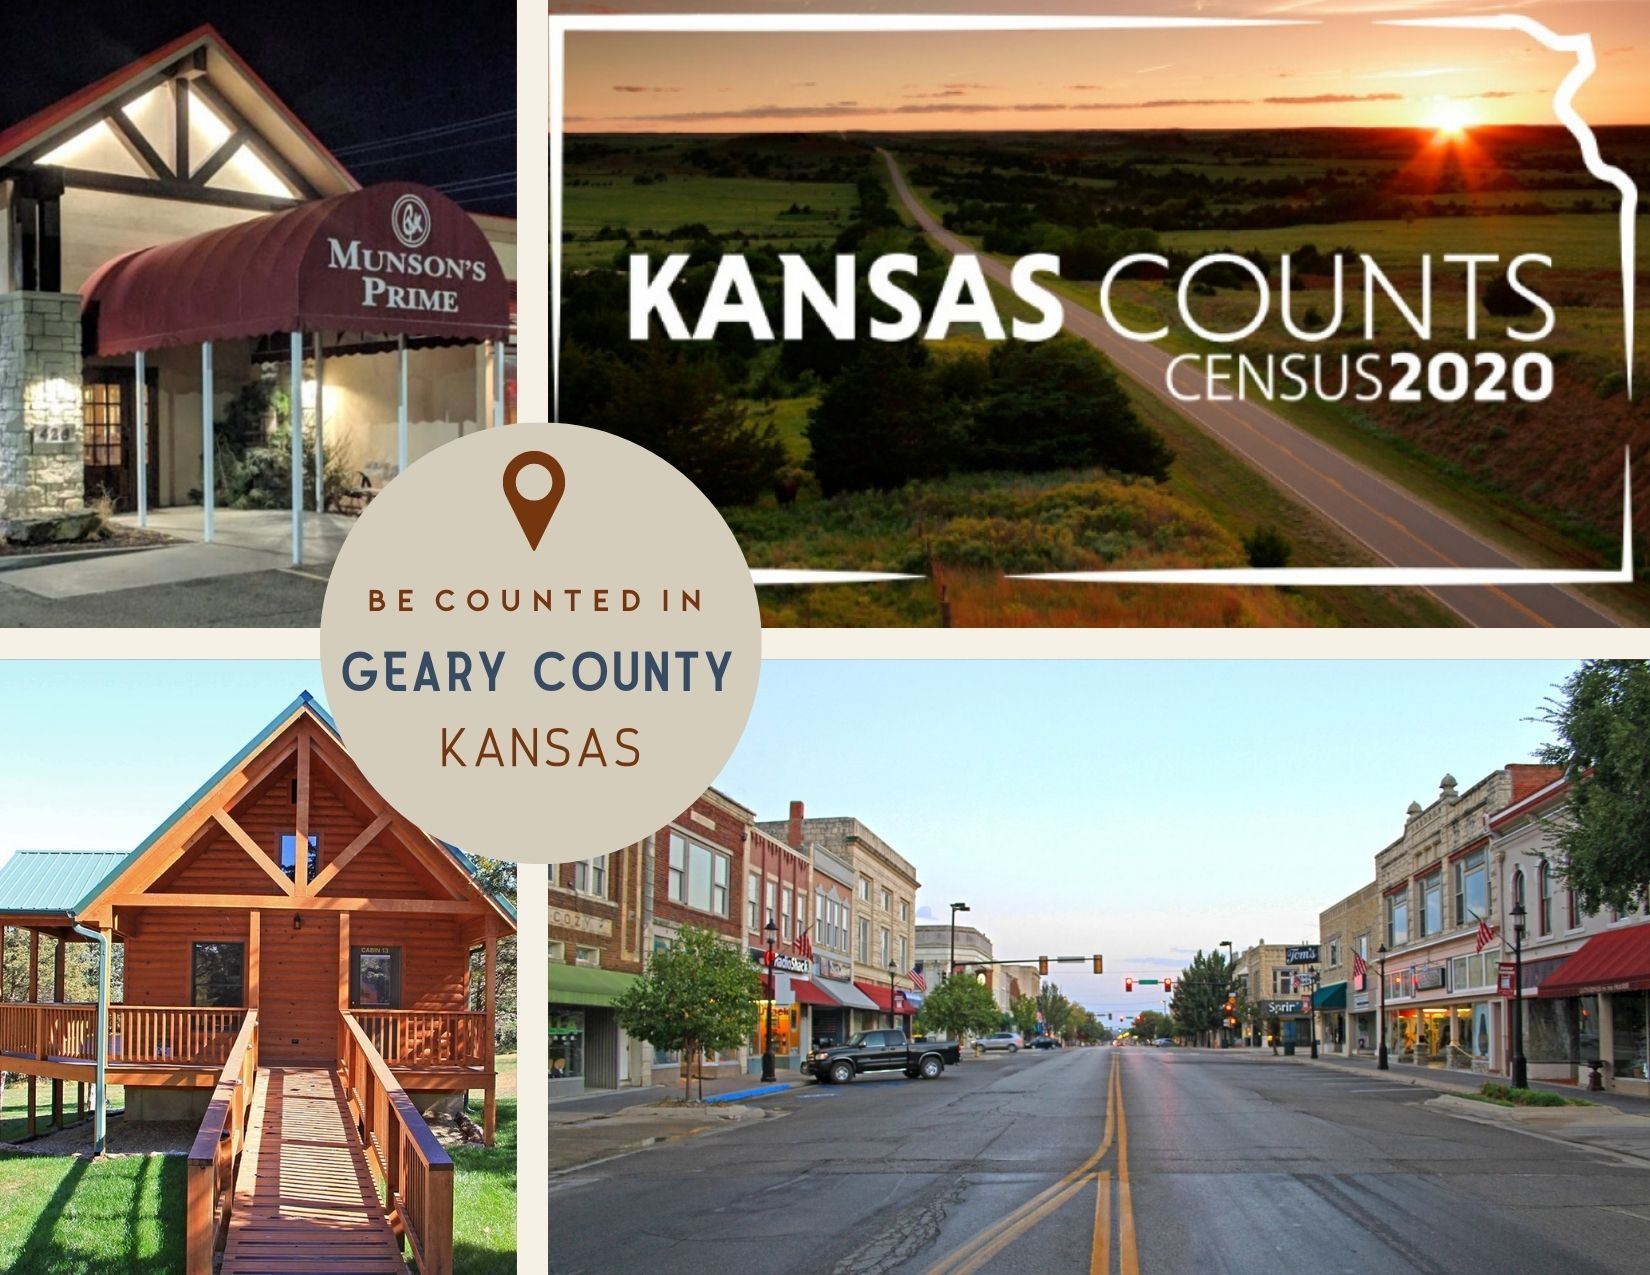 Geary County Census 2020